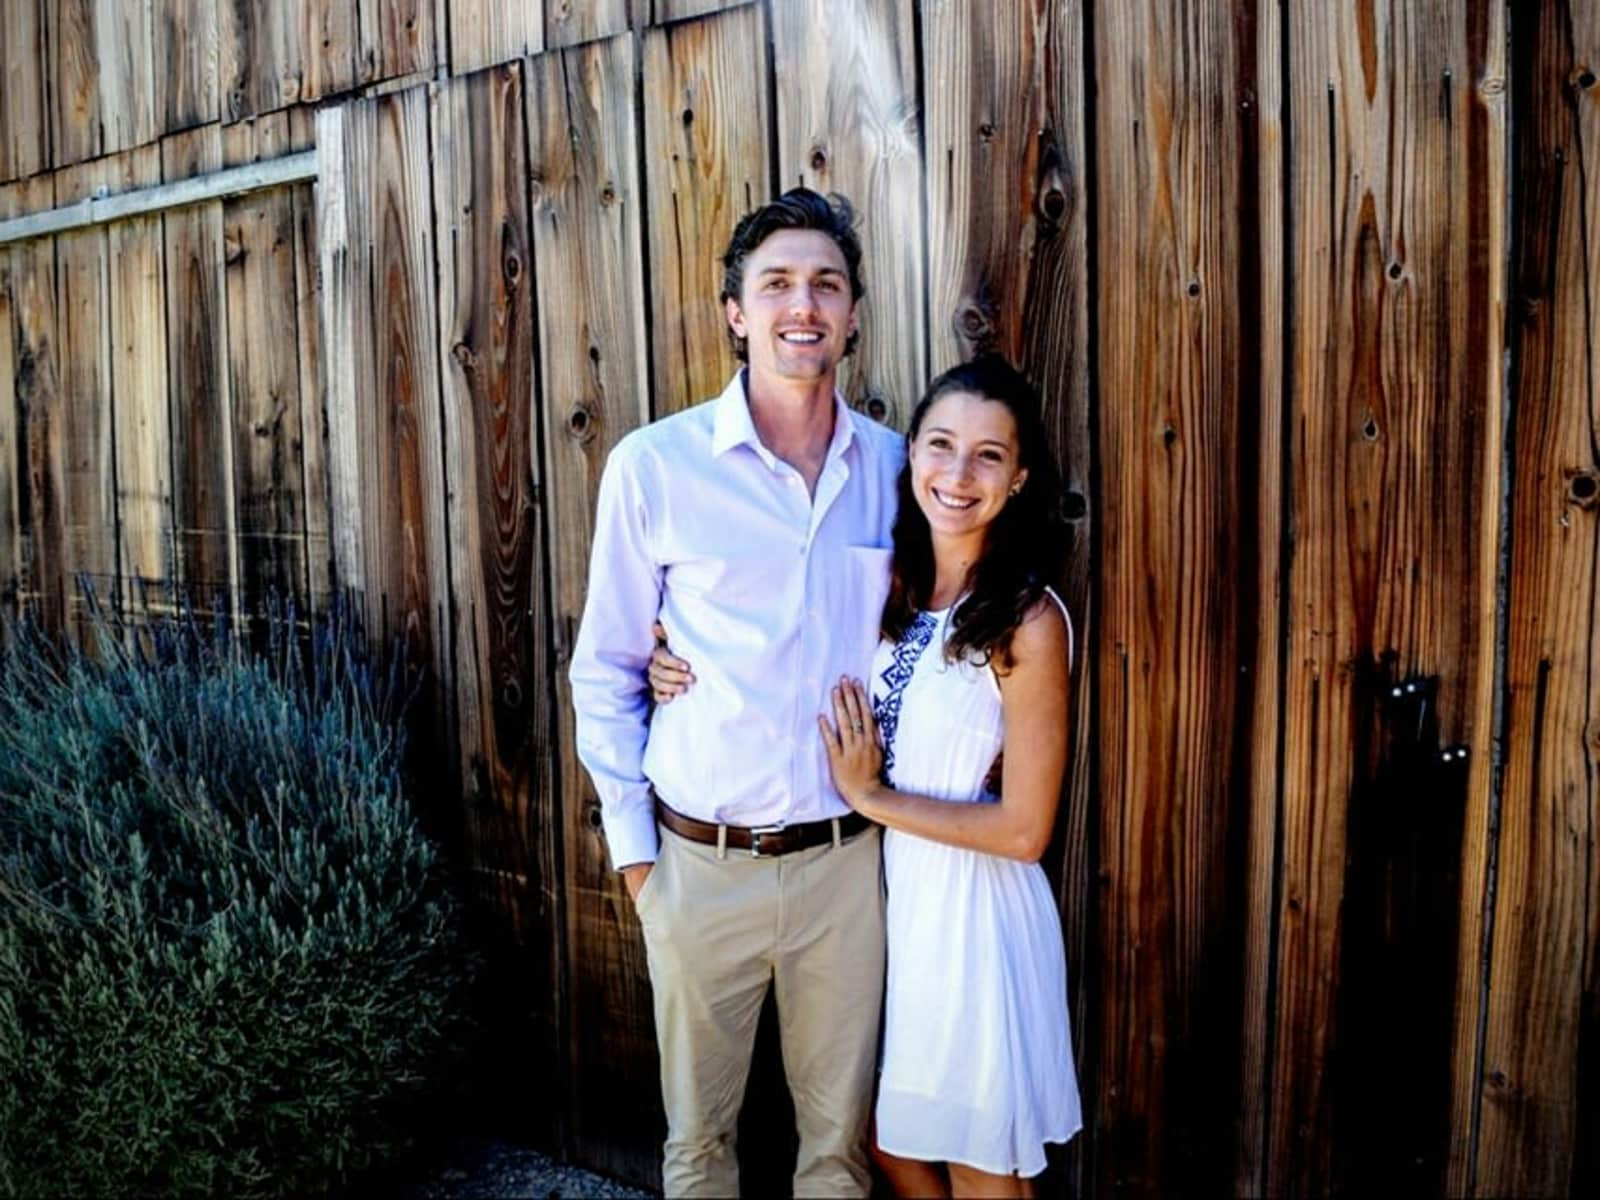 Morgan & Nick from Colorado Springs, Colorado, United States